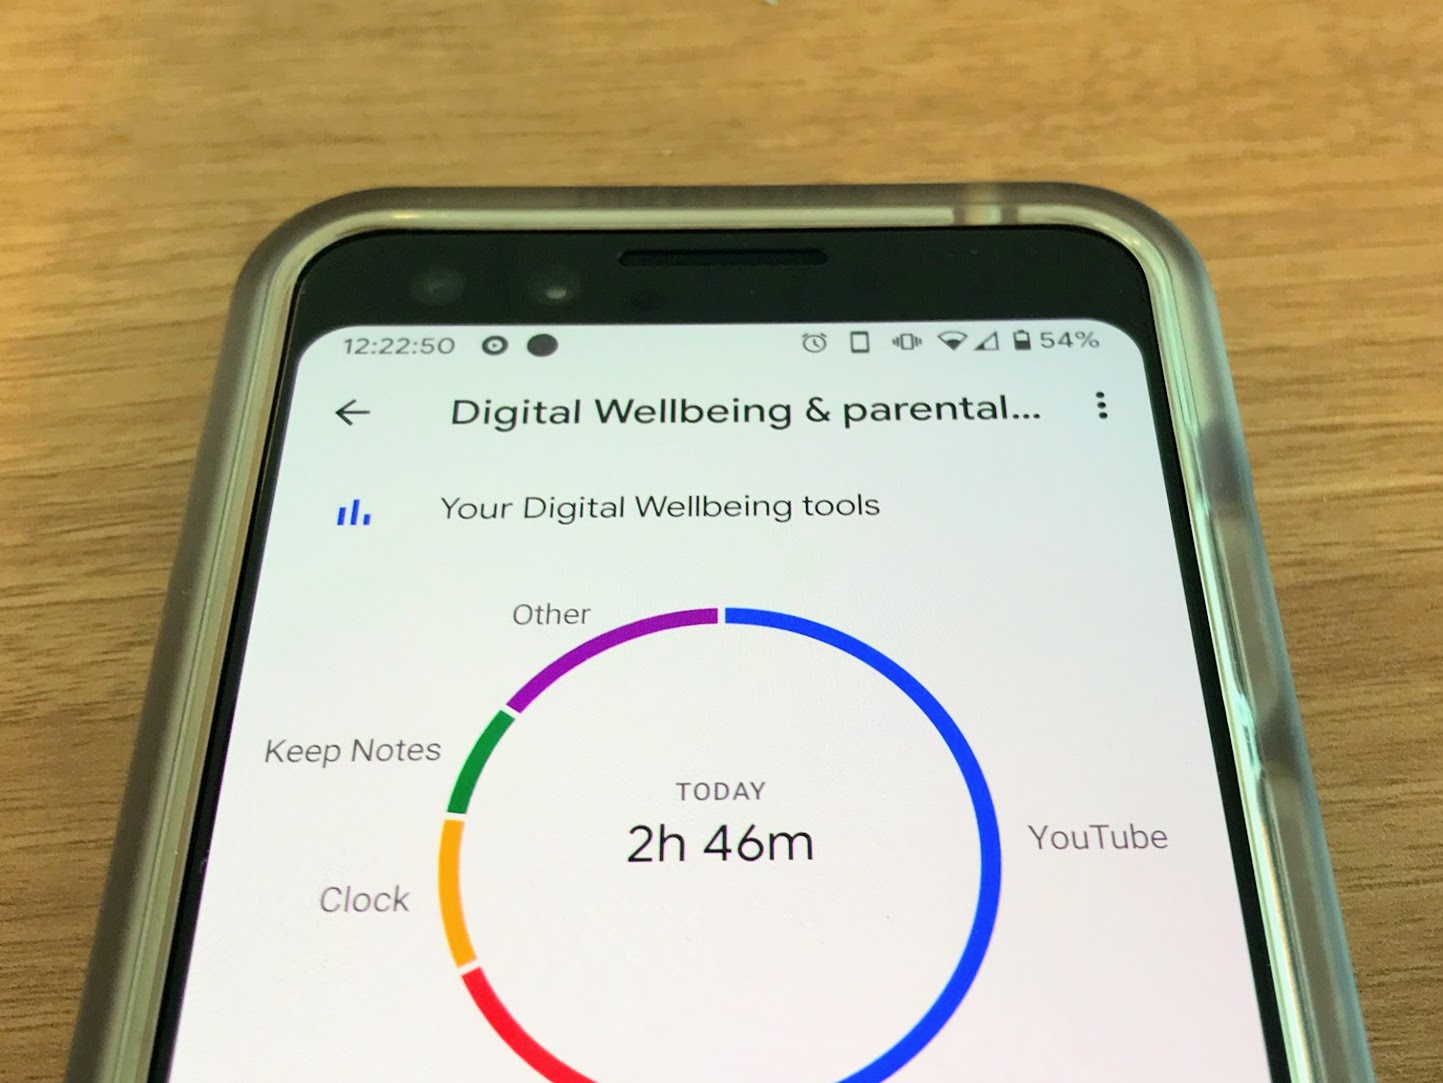 A device running Google's Digital Wellbeing software helps a user measure the time spent on specific apps. Digital Wellbeing helps Android users control how they use their device to curb phone addiction.